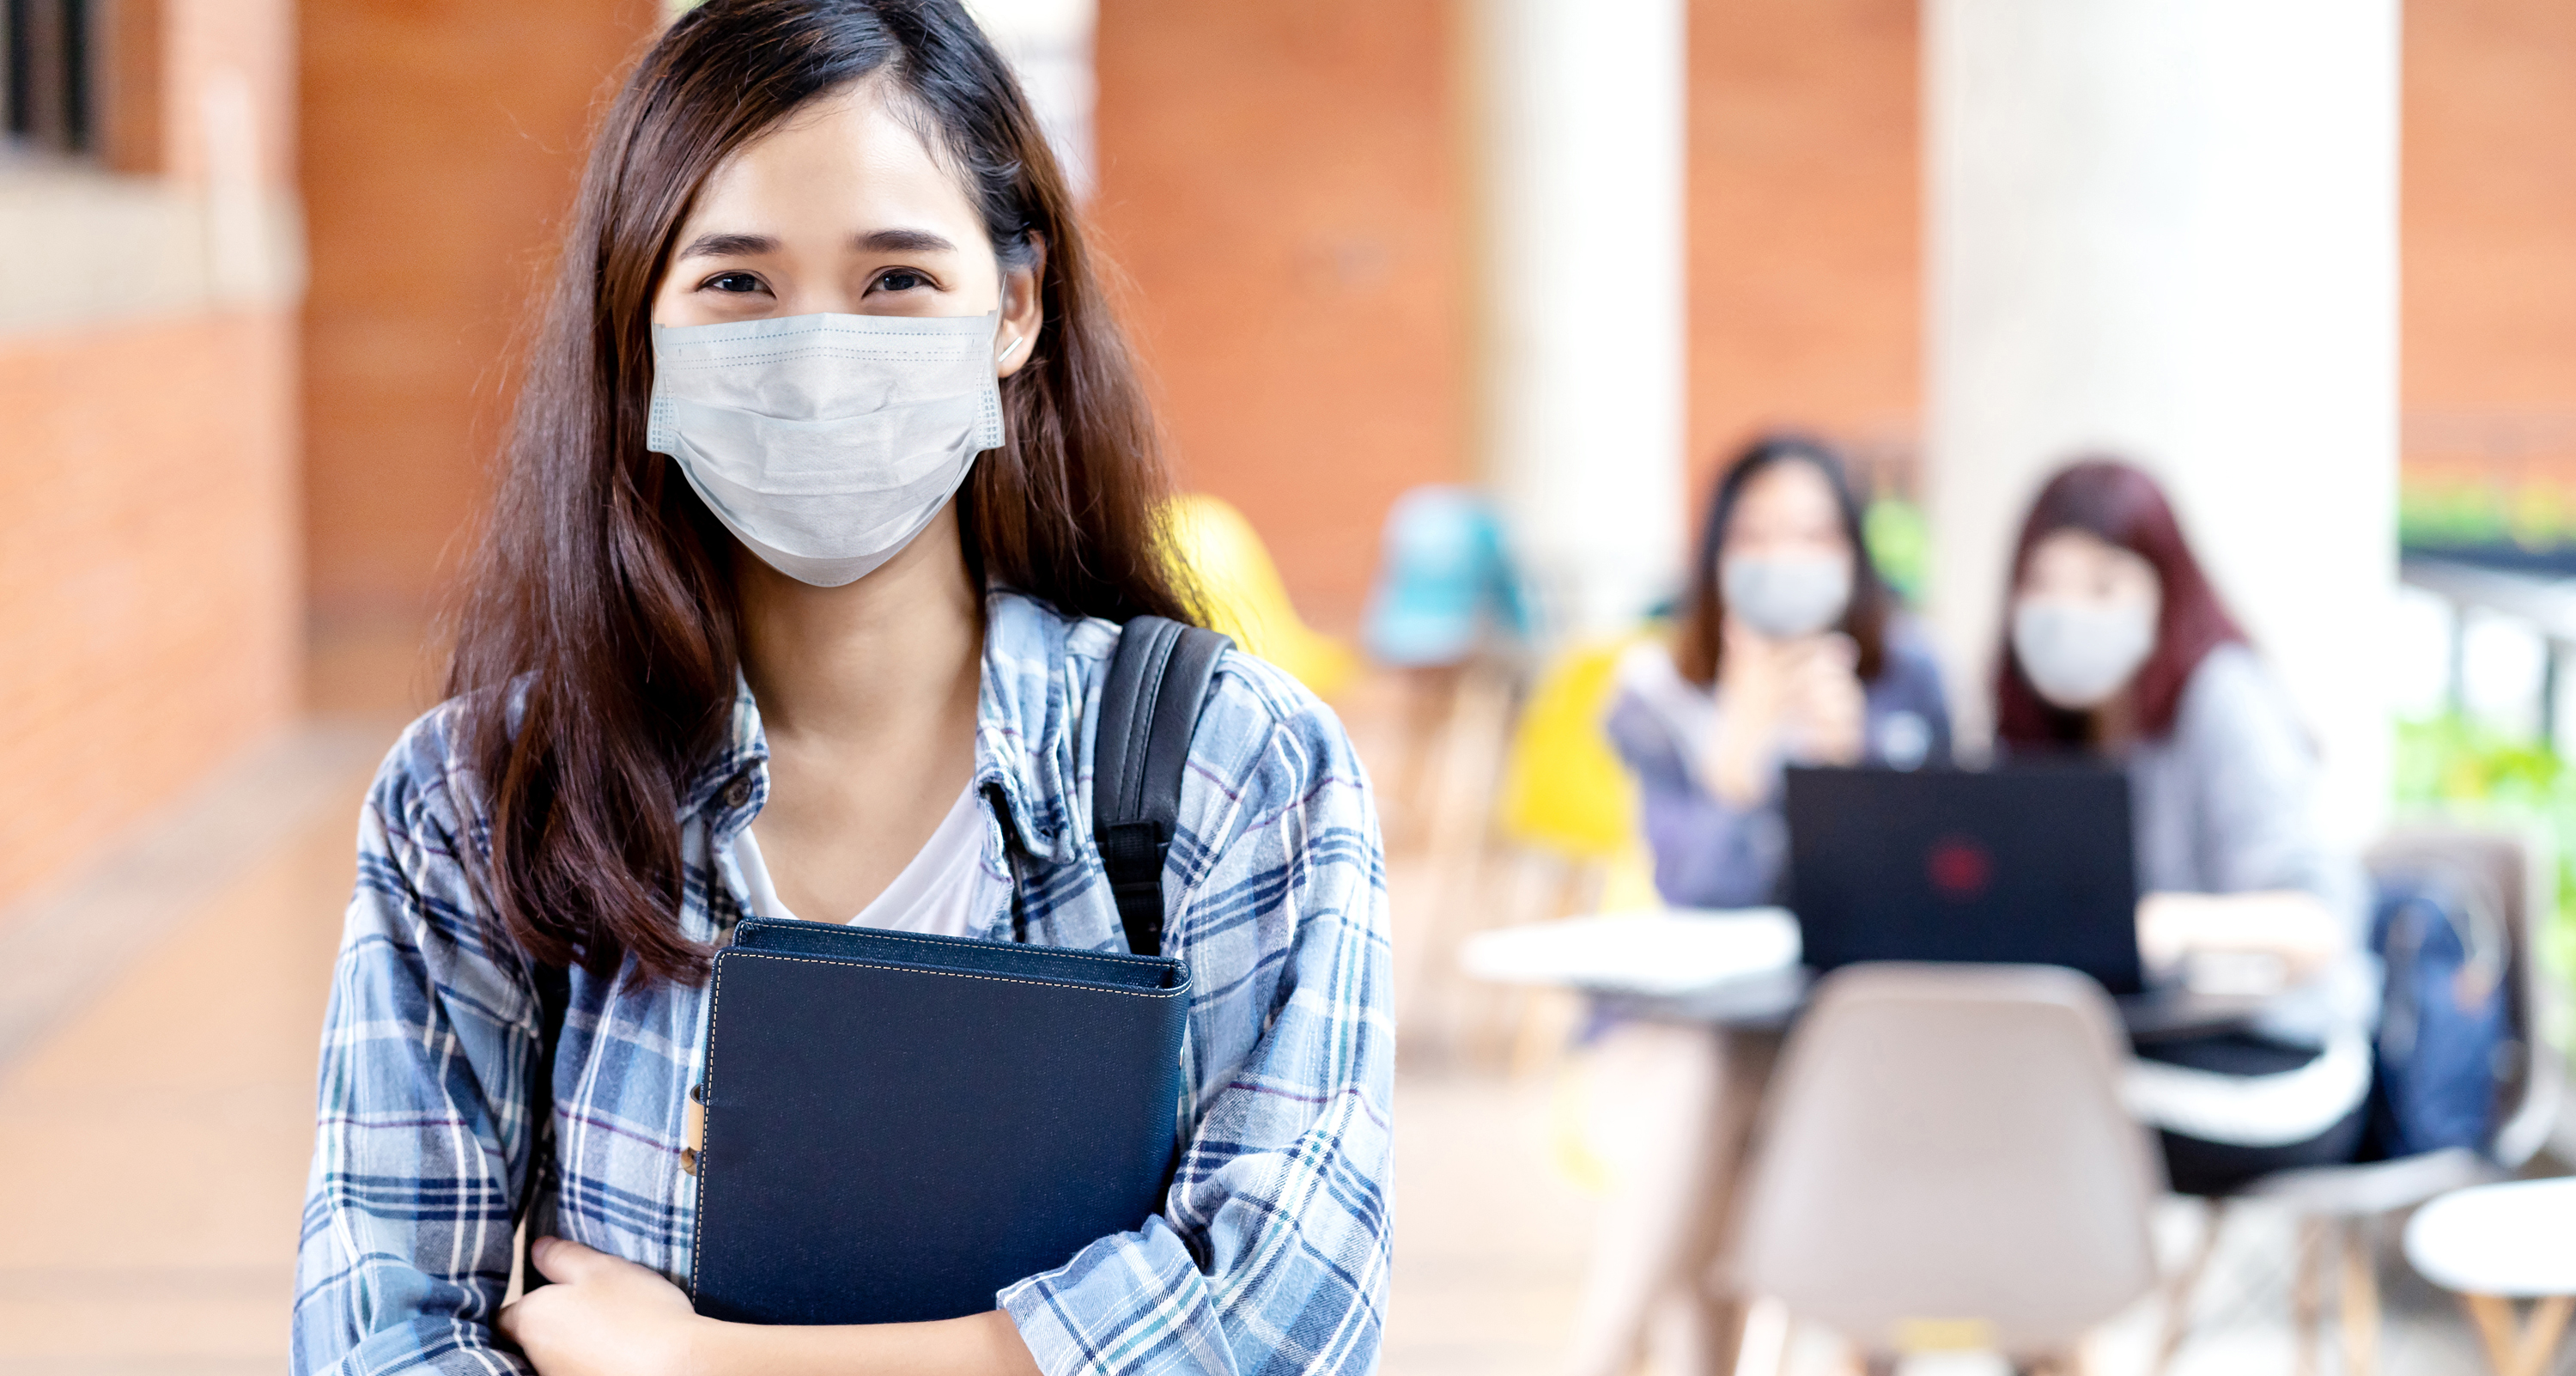 College student wearing a mask during COVID-19